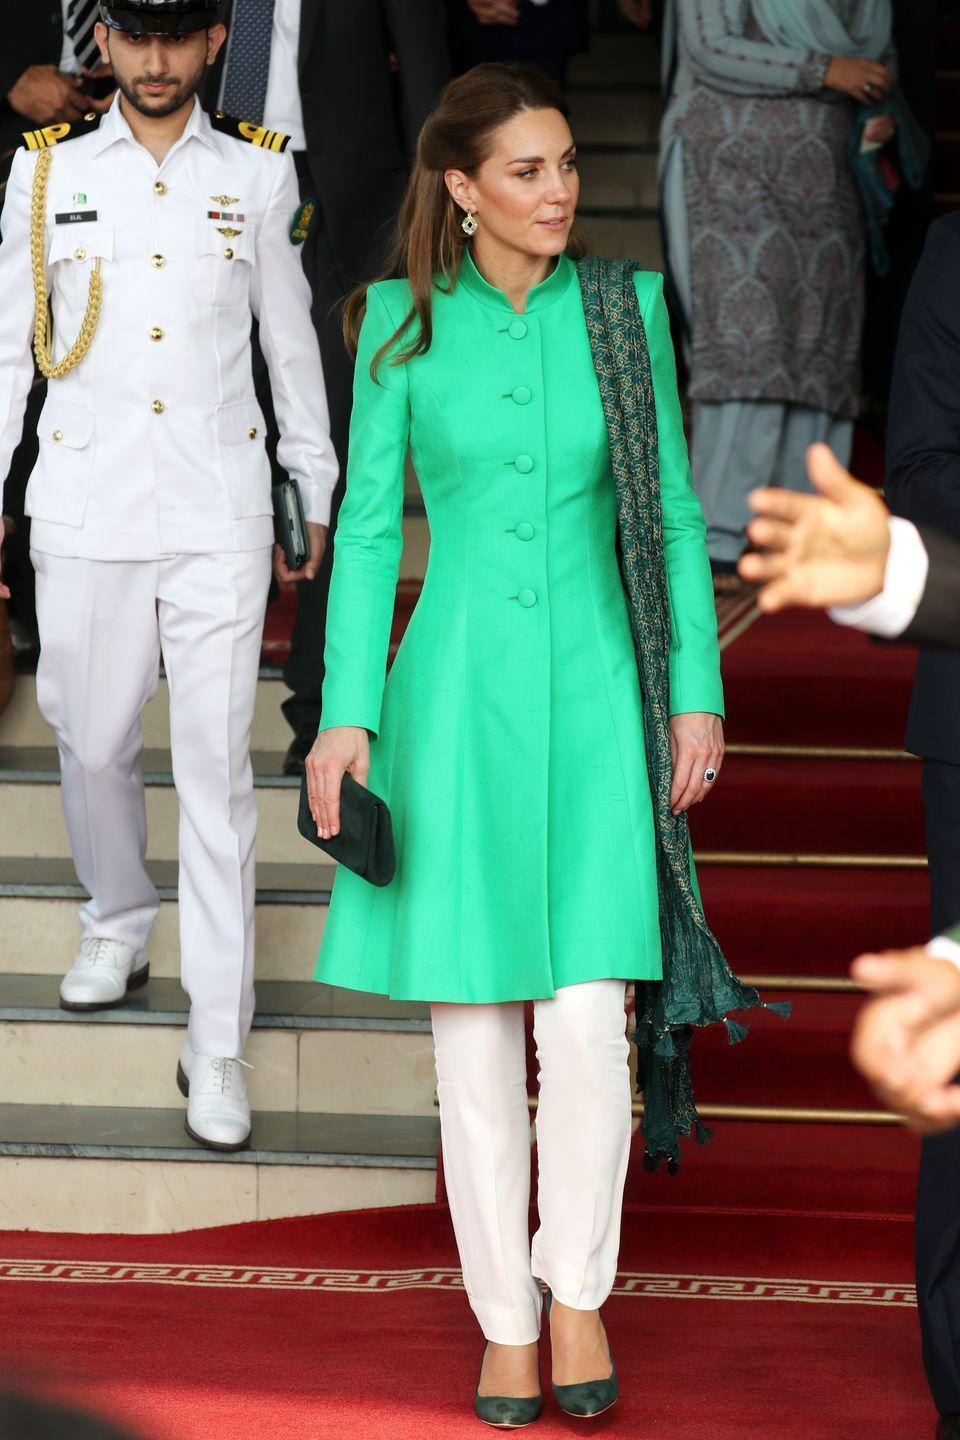 <p>The Duchess of Cambridge at the residence of Pakistan's Prime Minister, Imran Khan. She wore a coat dress by Catherine Walker. </p>